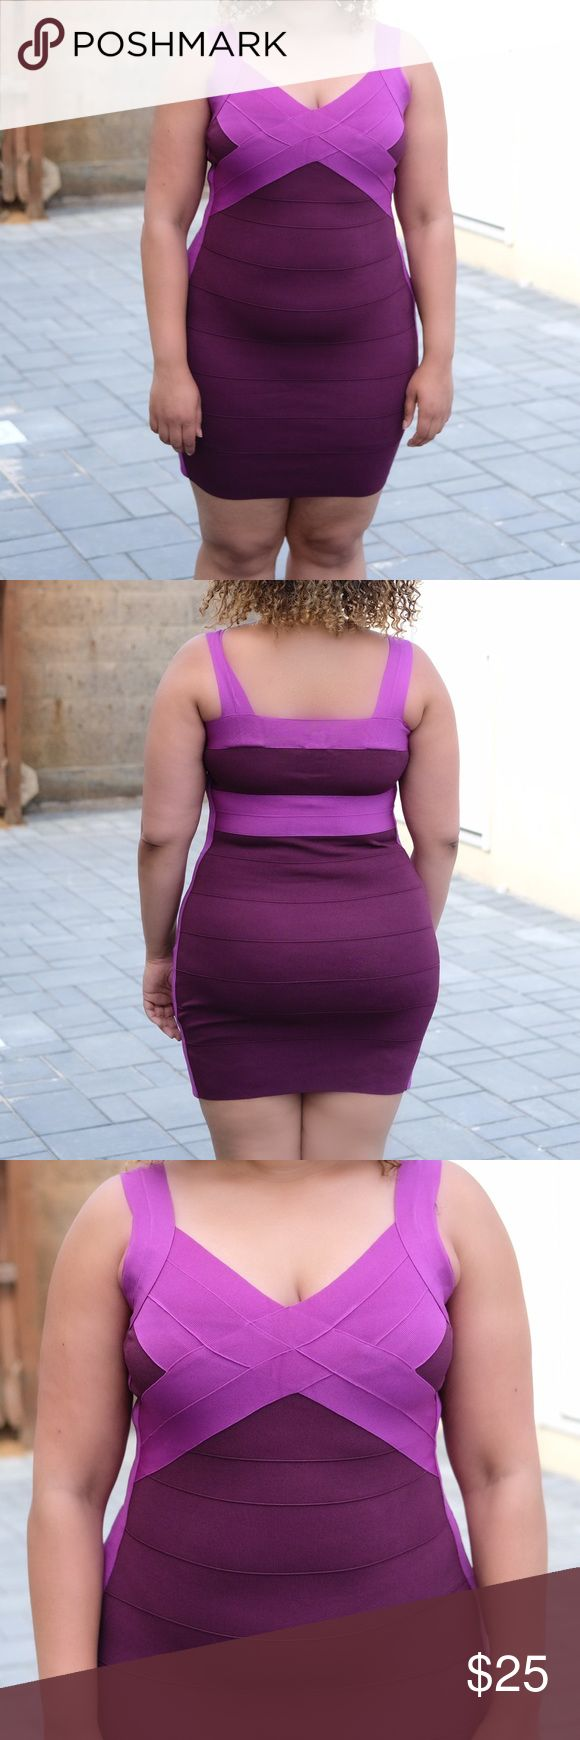 Express purple bandage dress Size L purple bandage dress from Express. 67% rayon, 31% nylon, 2% spandex. Worn once, no snags or damage, stretchy material Express Dresses